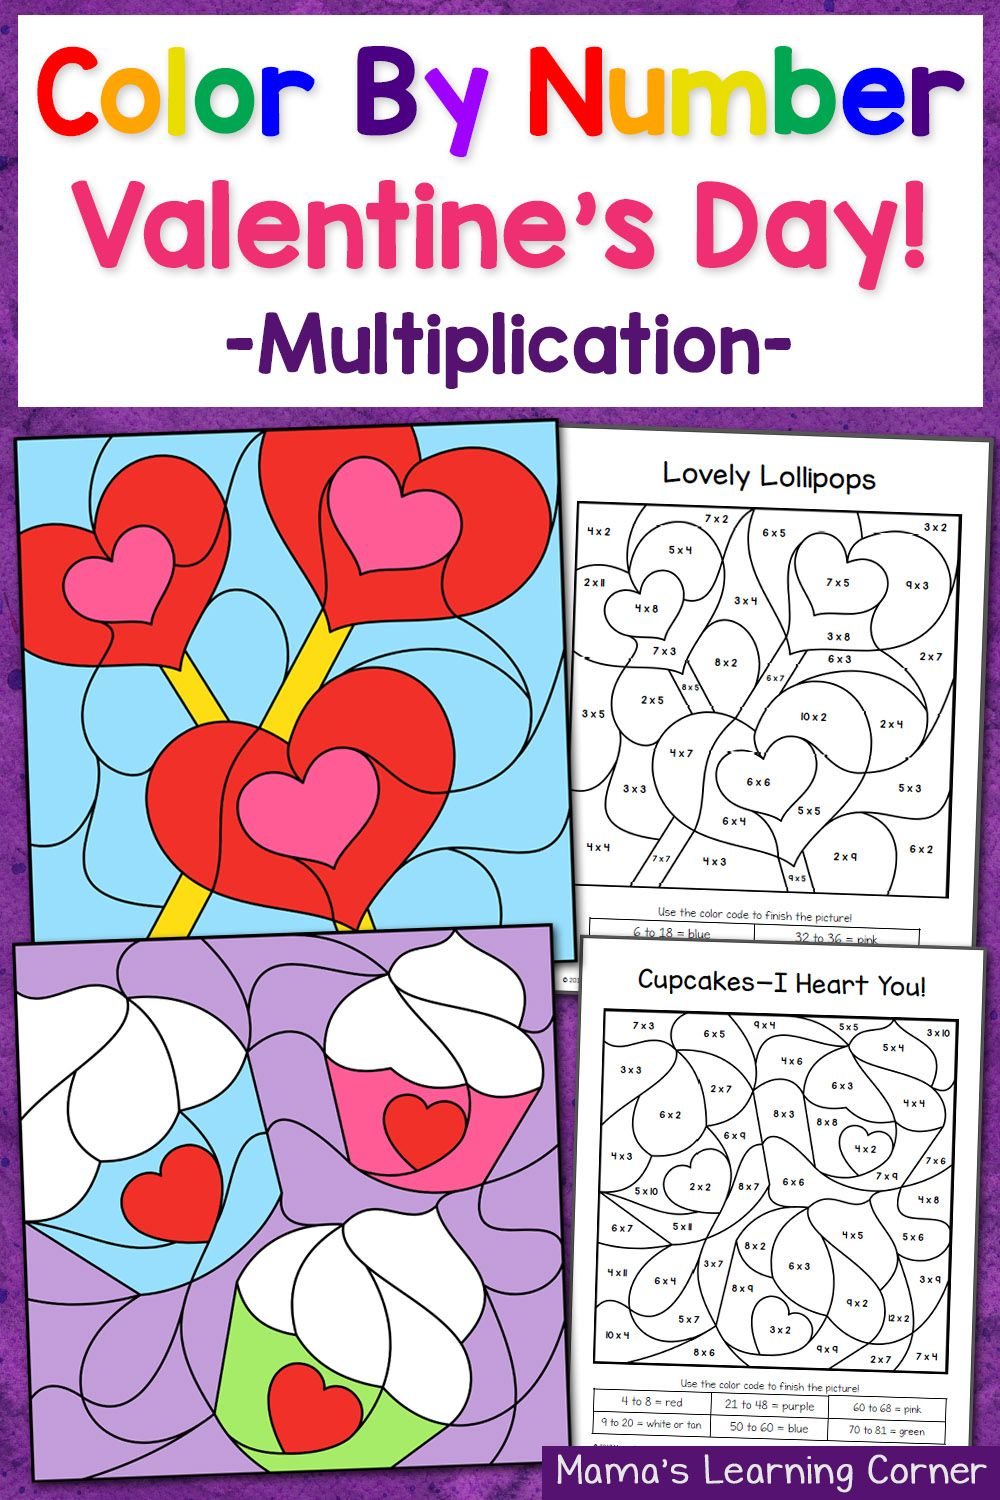 Multiplication Worksheets multiplication worksheets color by number : Valentine's Day Color By Number Multiplication Worksheets ...